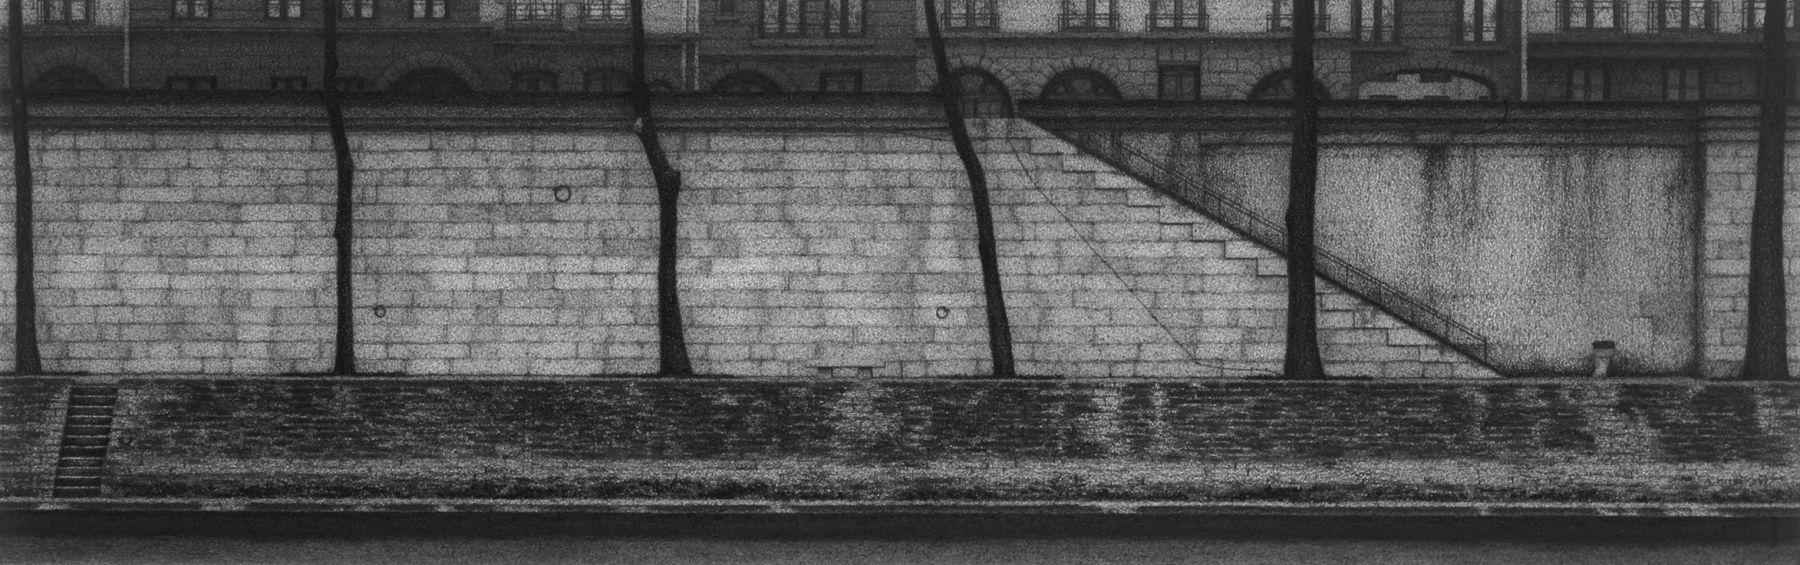 Anthony Mitri, Study: Rive Gauche, Paris, 2007, charcoal on paper, 6 1/4 x 19 3/4 inches